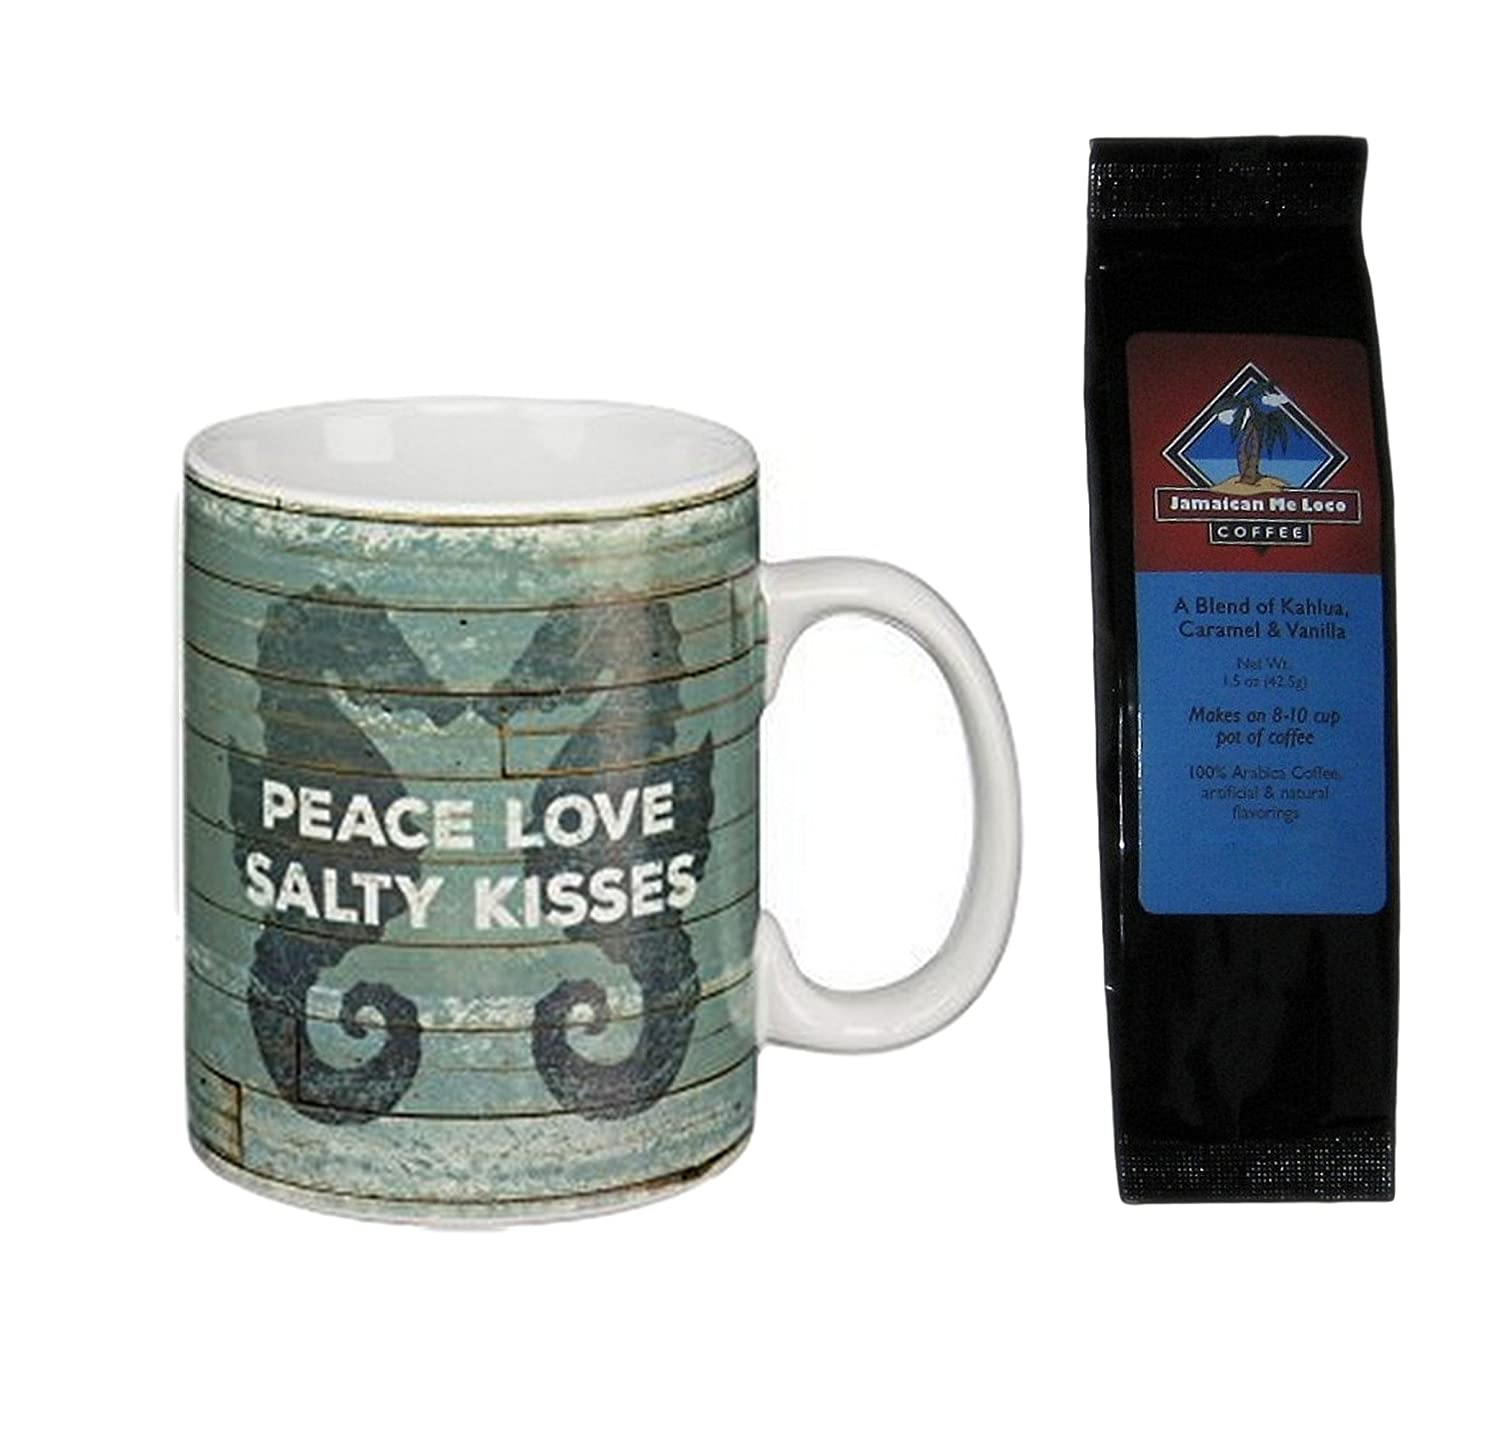 Amazon.com : Seahorses Peace Love Salty Kisses Beach Coffee Mug and Jamaican Me Loco Coffee Bundle Gift Set (2 Items) : Grocery & Gourmet Food